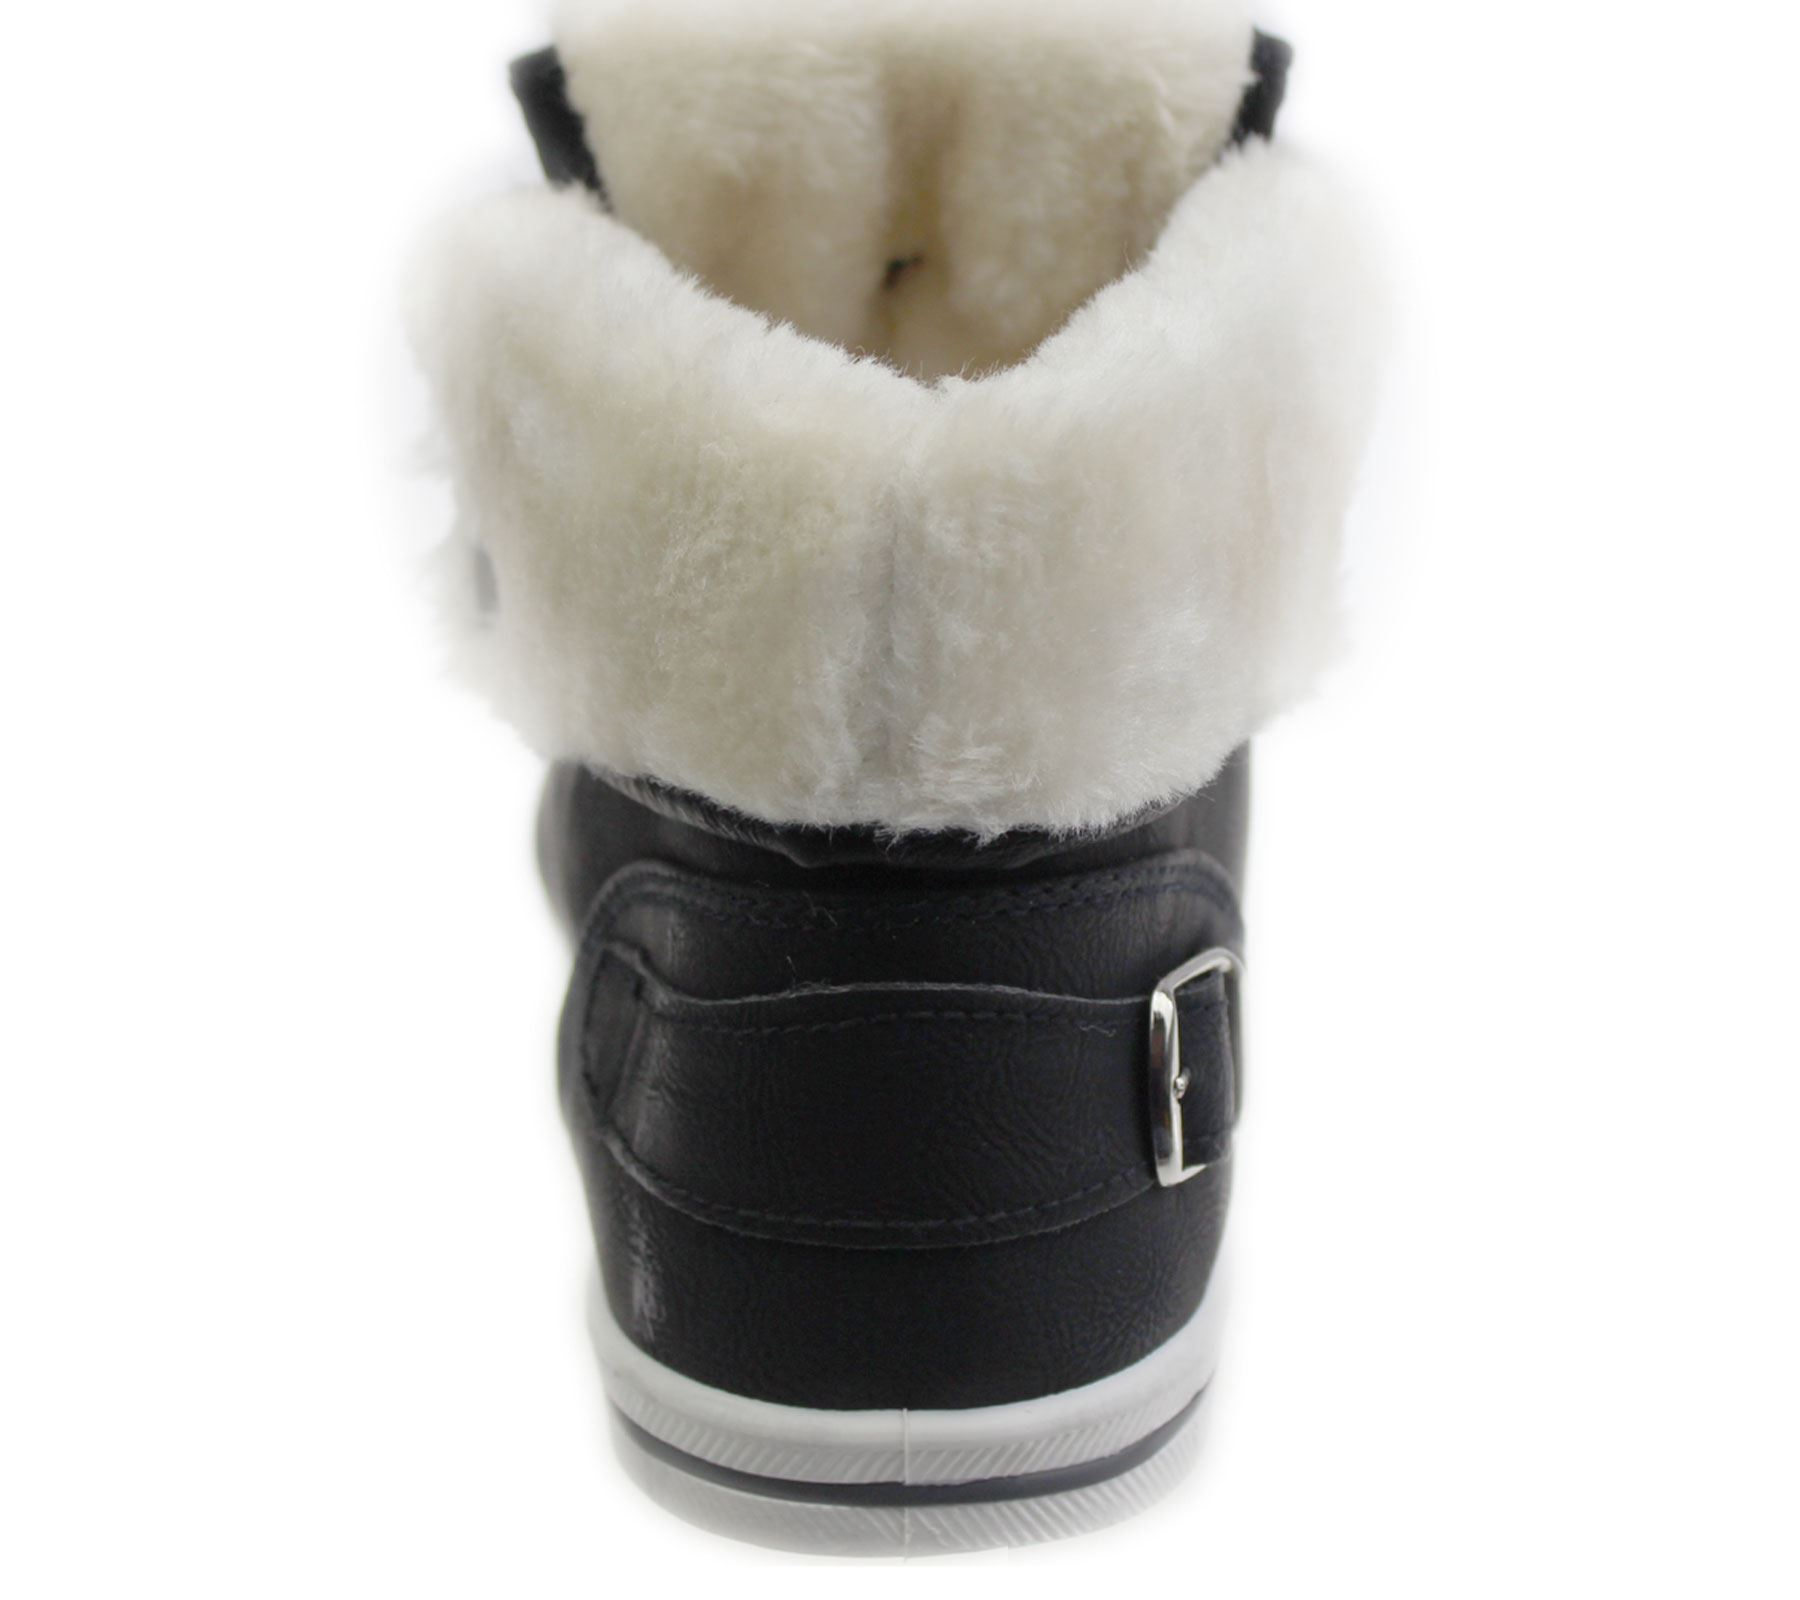 Girls-Boots-Womens-Warm-Lined-High-Top-Ankle-Trainer-Ladies-Winter-Shoes-Size miniatura 86